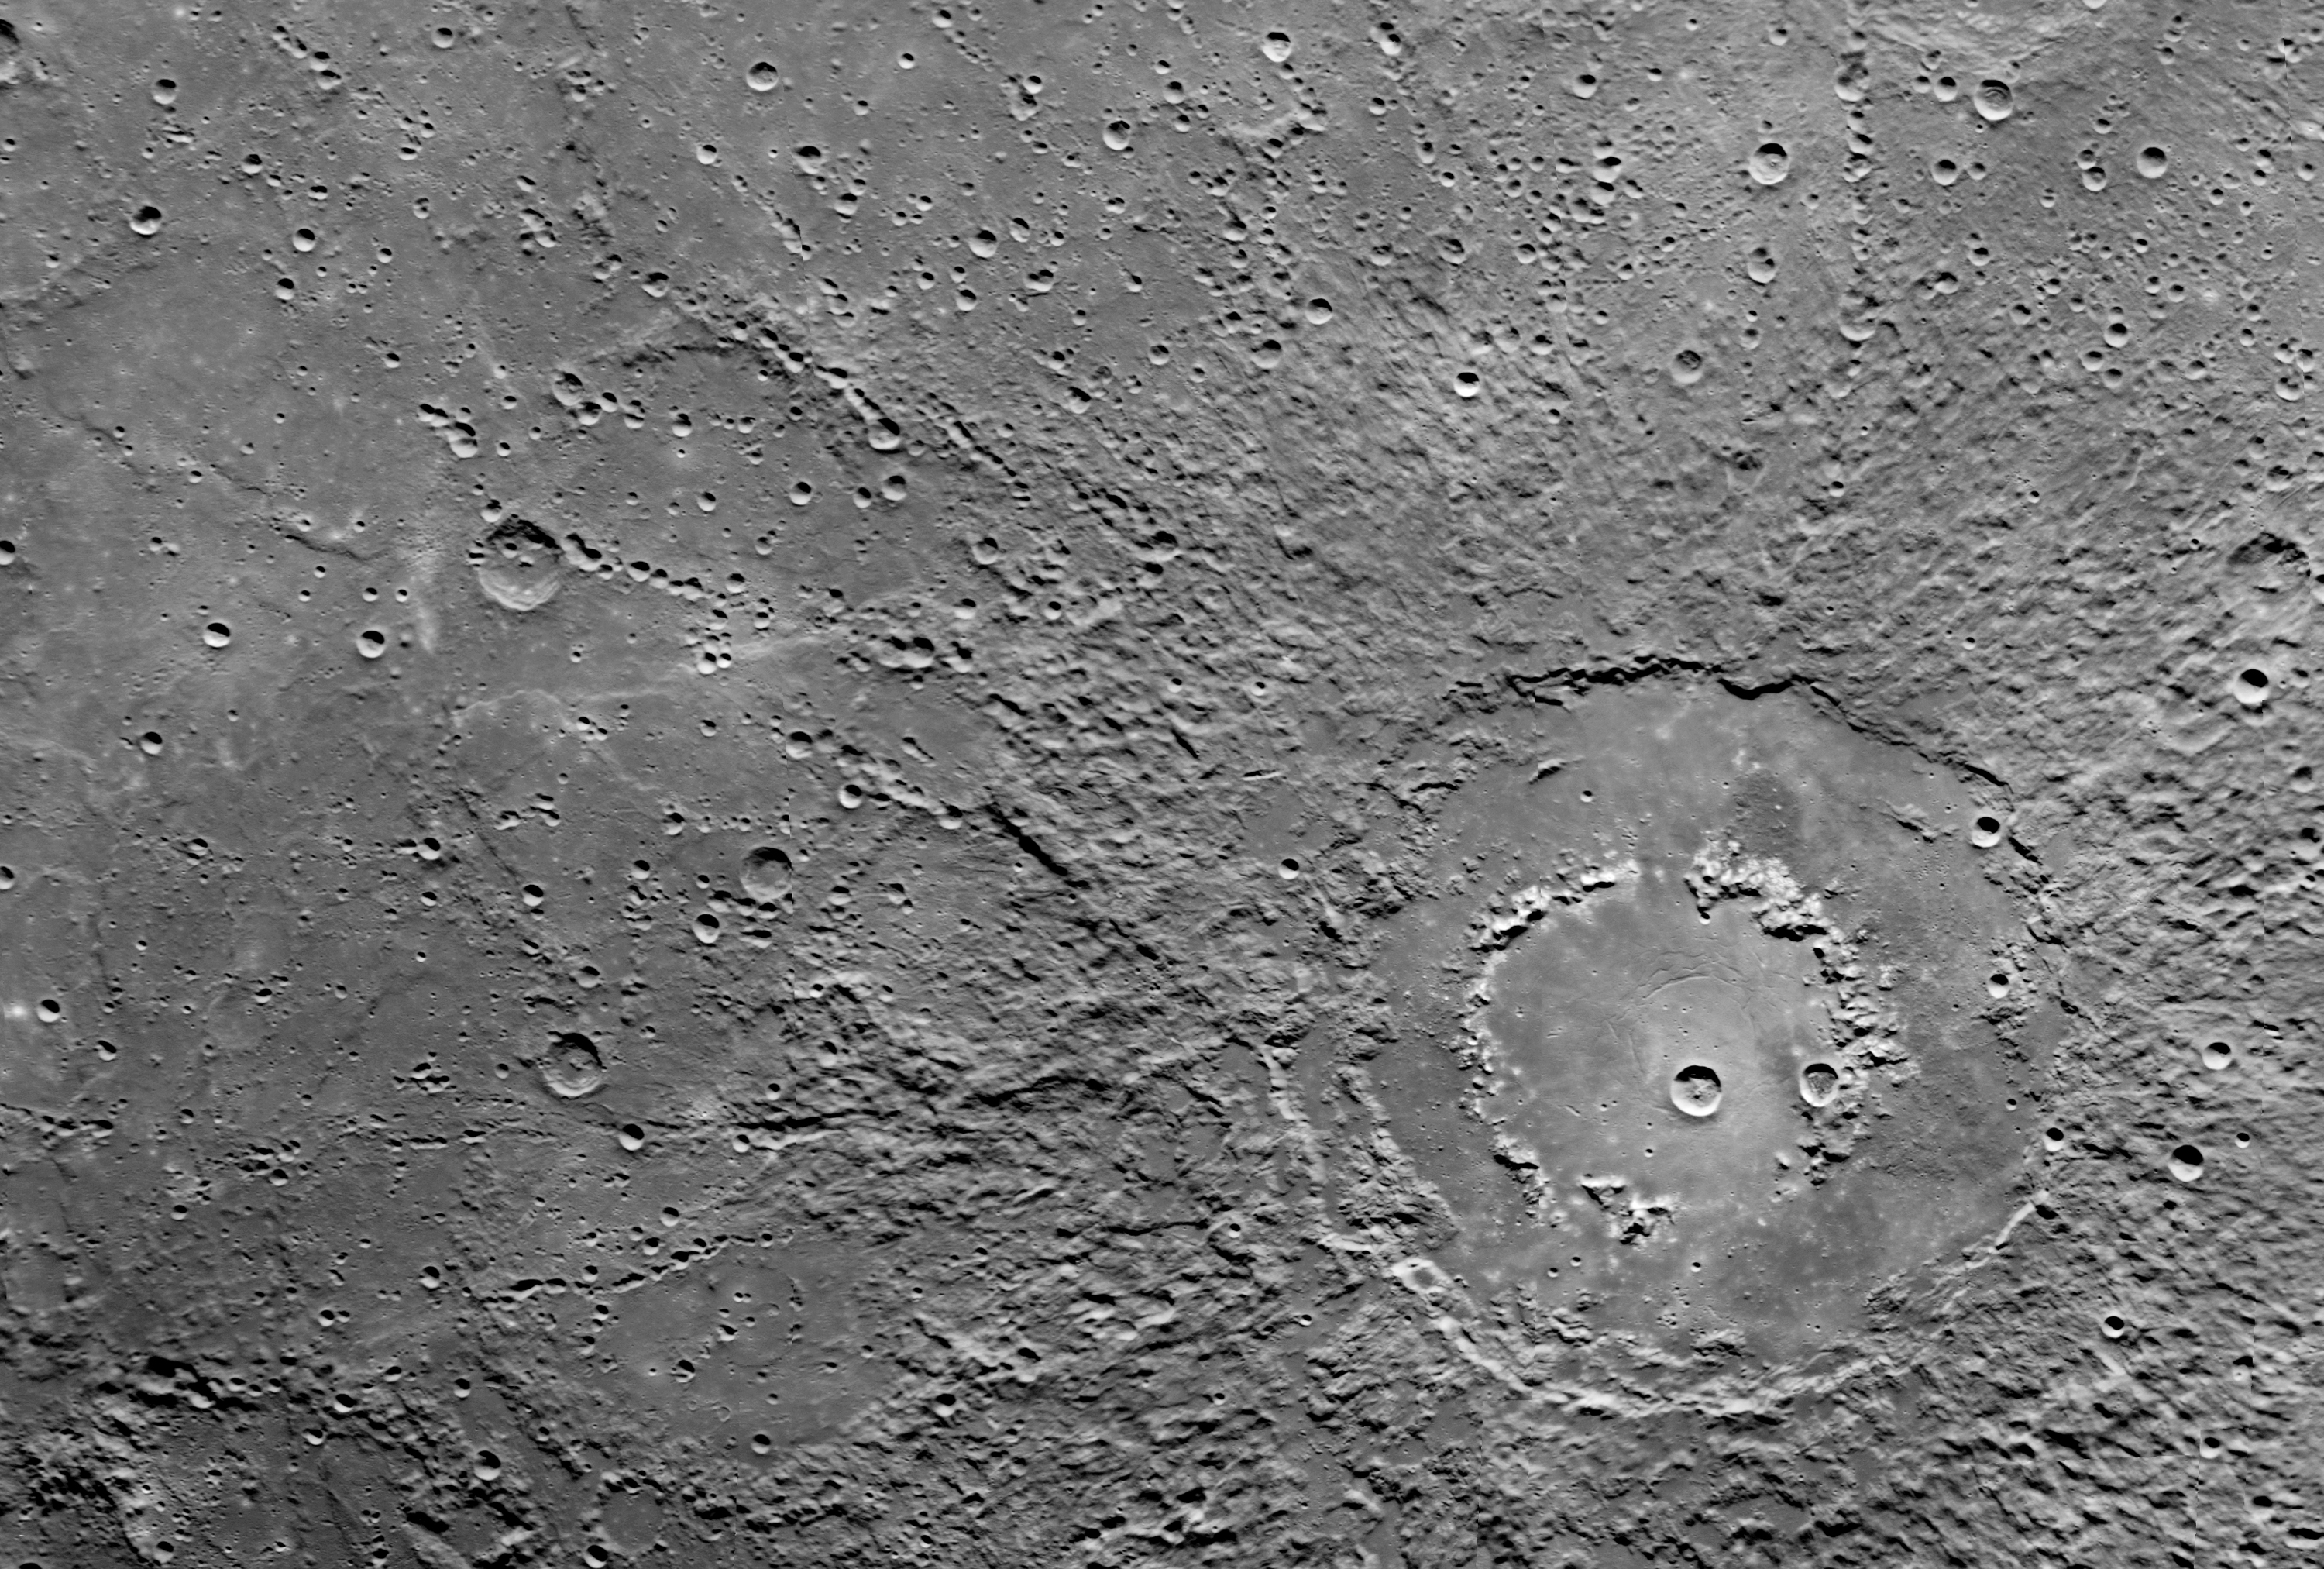 Mercury May Have Had Volcanoes